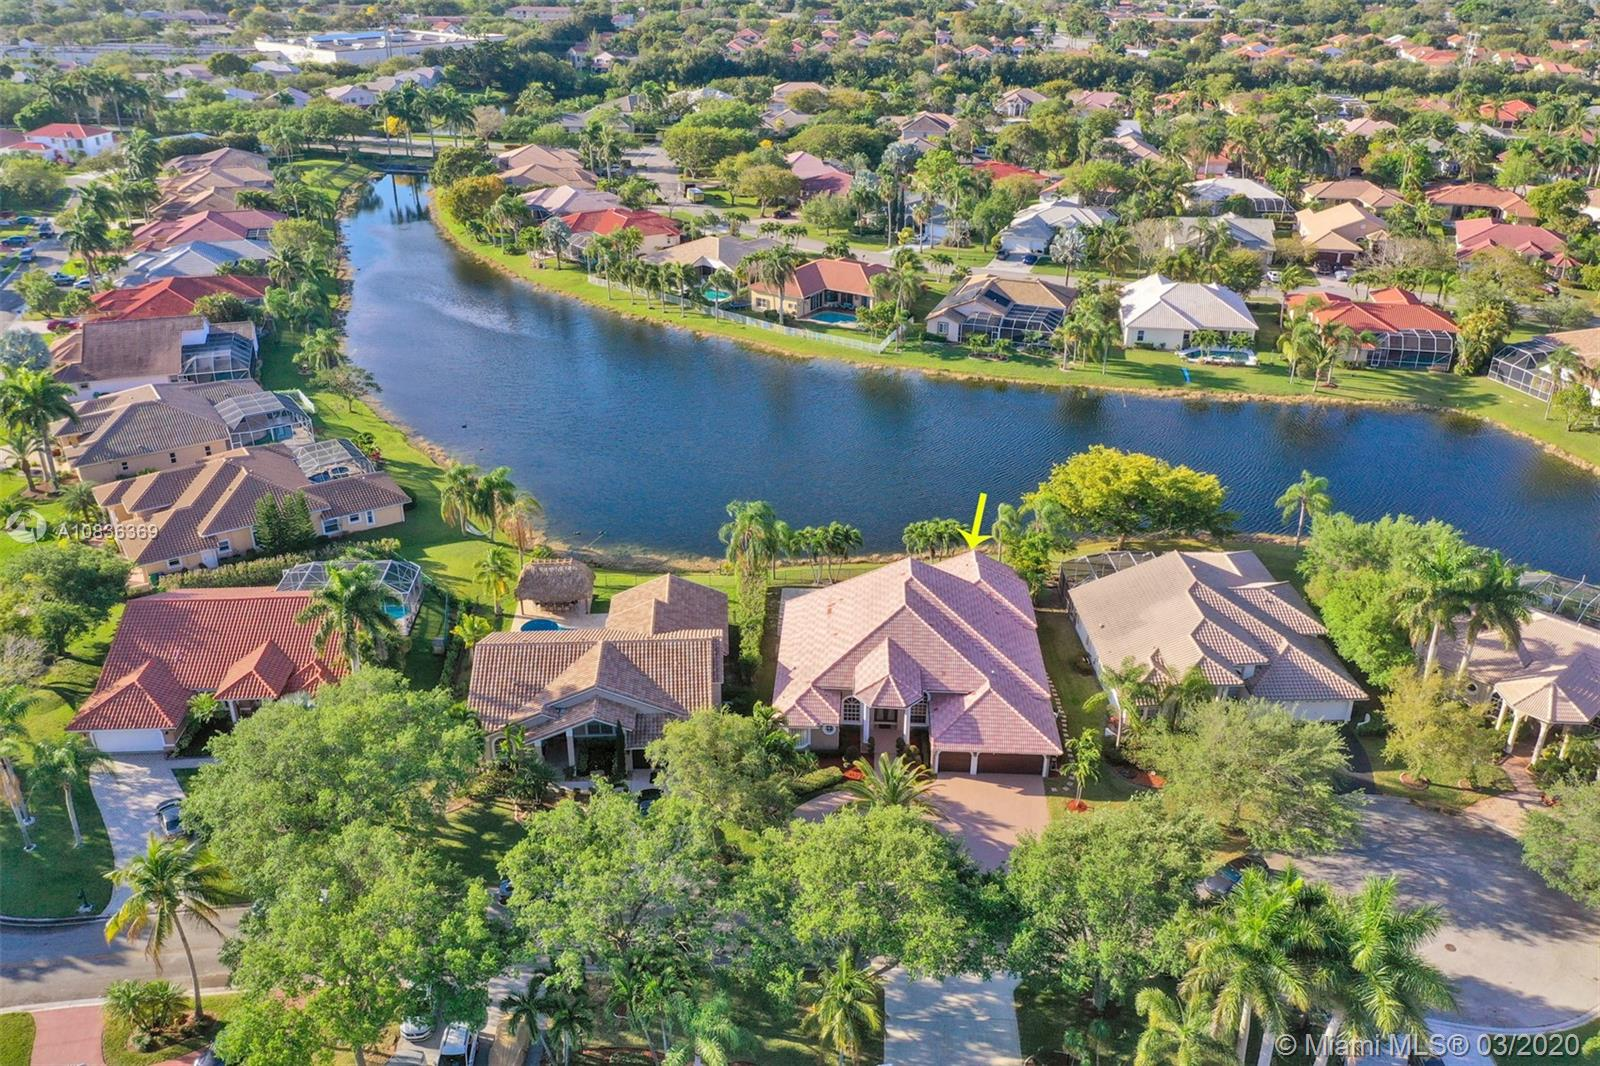 10730 NW 49th Manor, Coral Springs, FL 33076 - Coral Springs, FL real estate listing